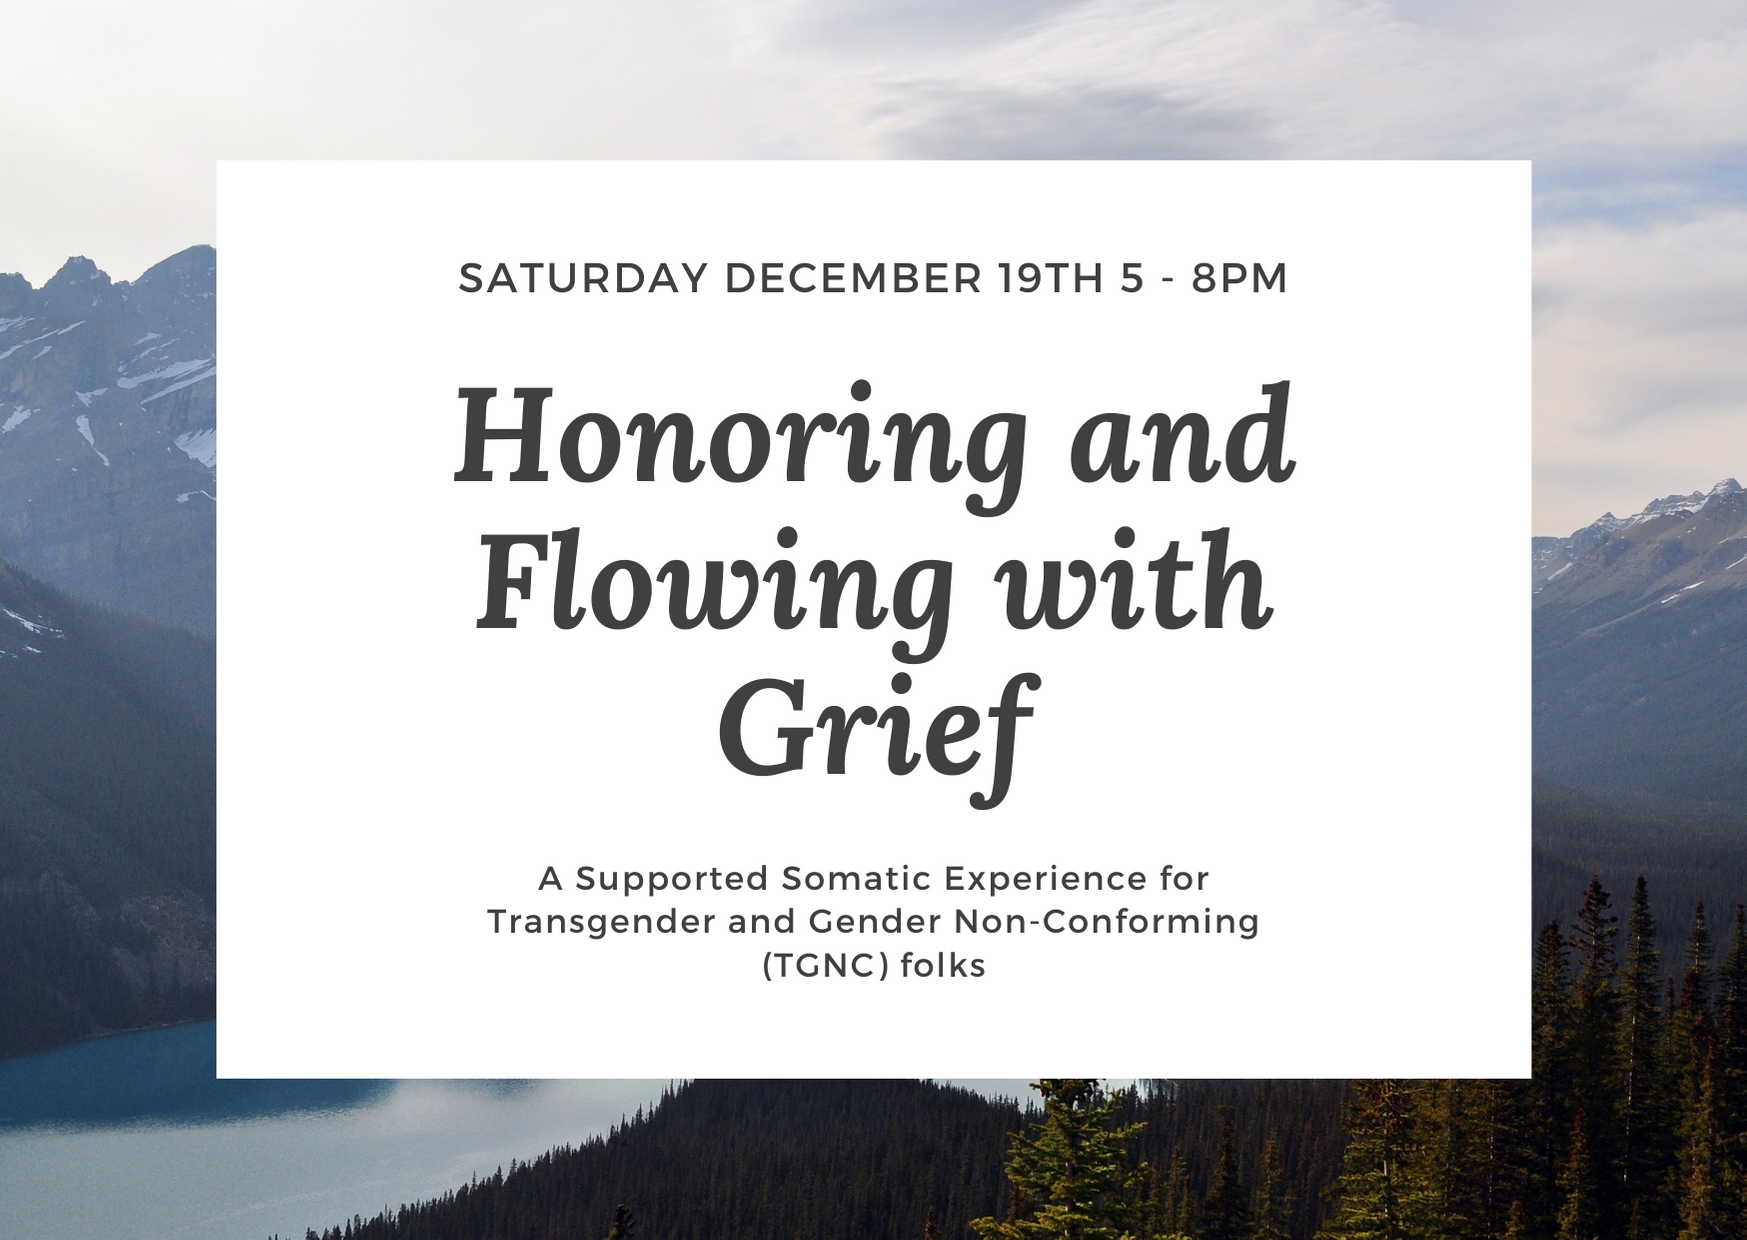 """[Image: White background over a picture of mountains with the words """"Saturday December 19th 5 - 8pm. Honoring and Flowing with Grief: A supported somatic experience for transgender and gender non-conforming (TGNC) folks""""]"""